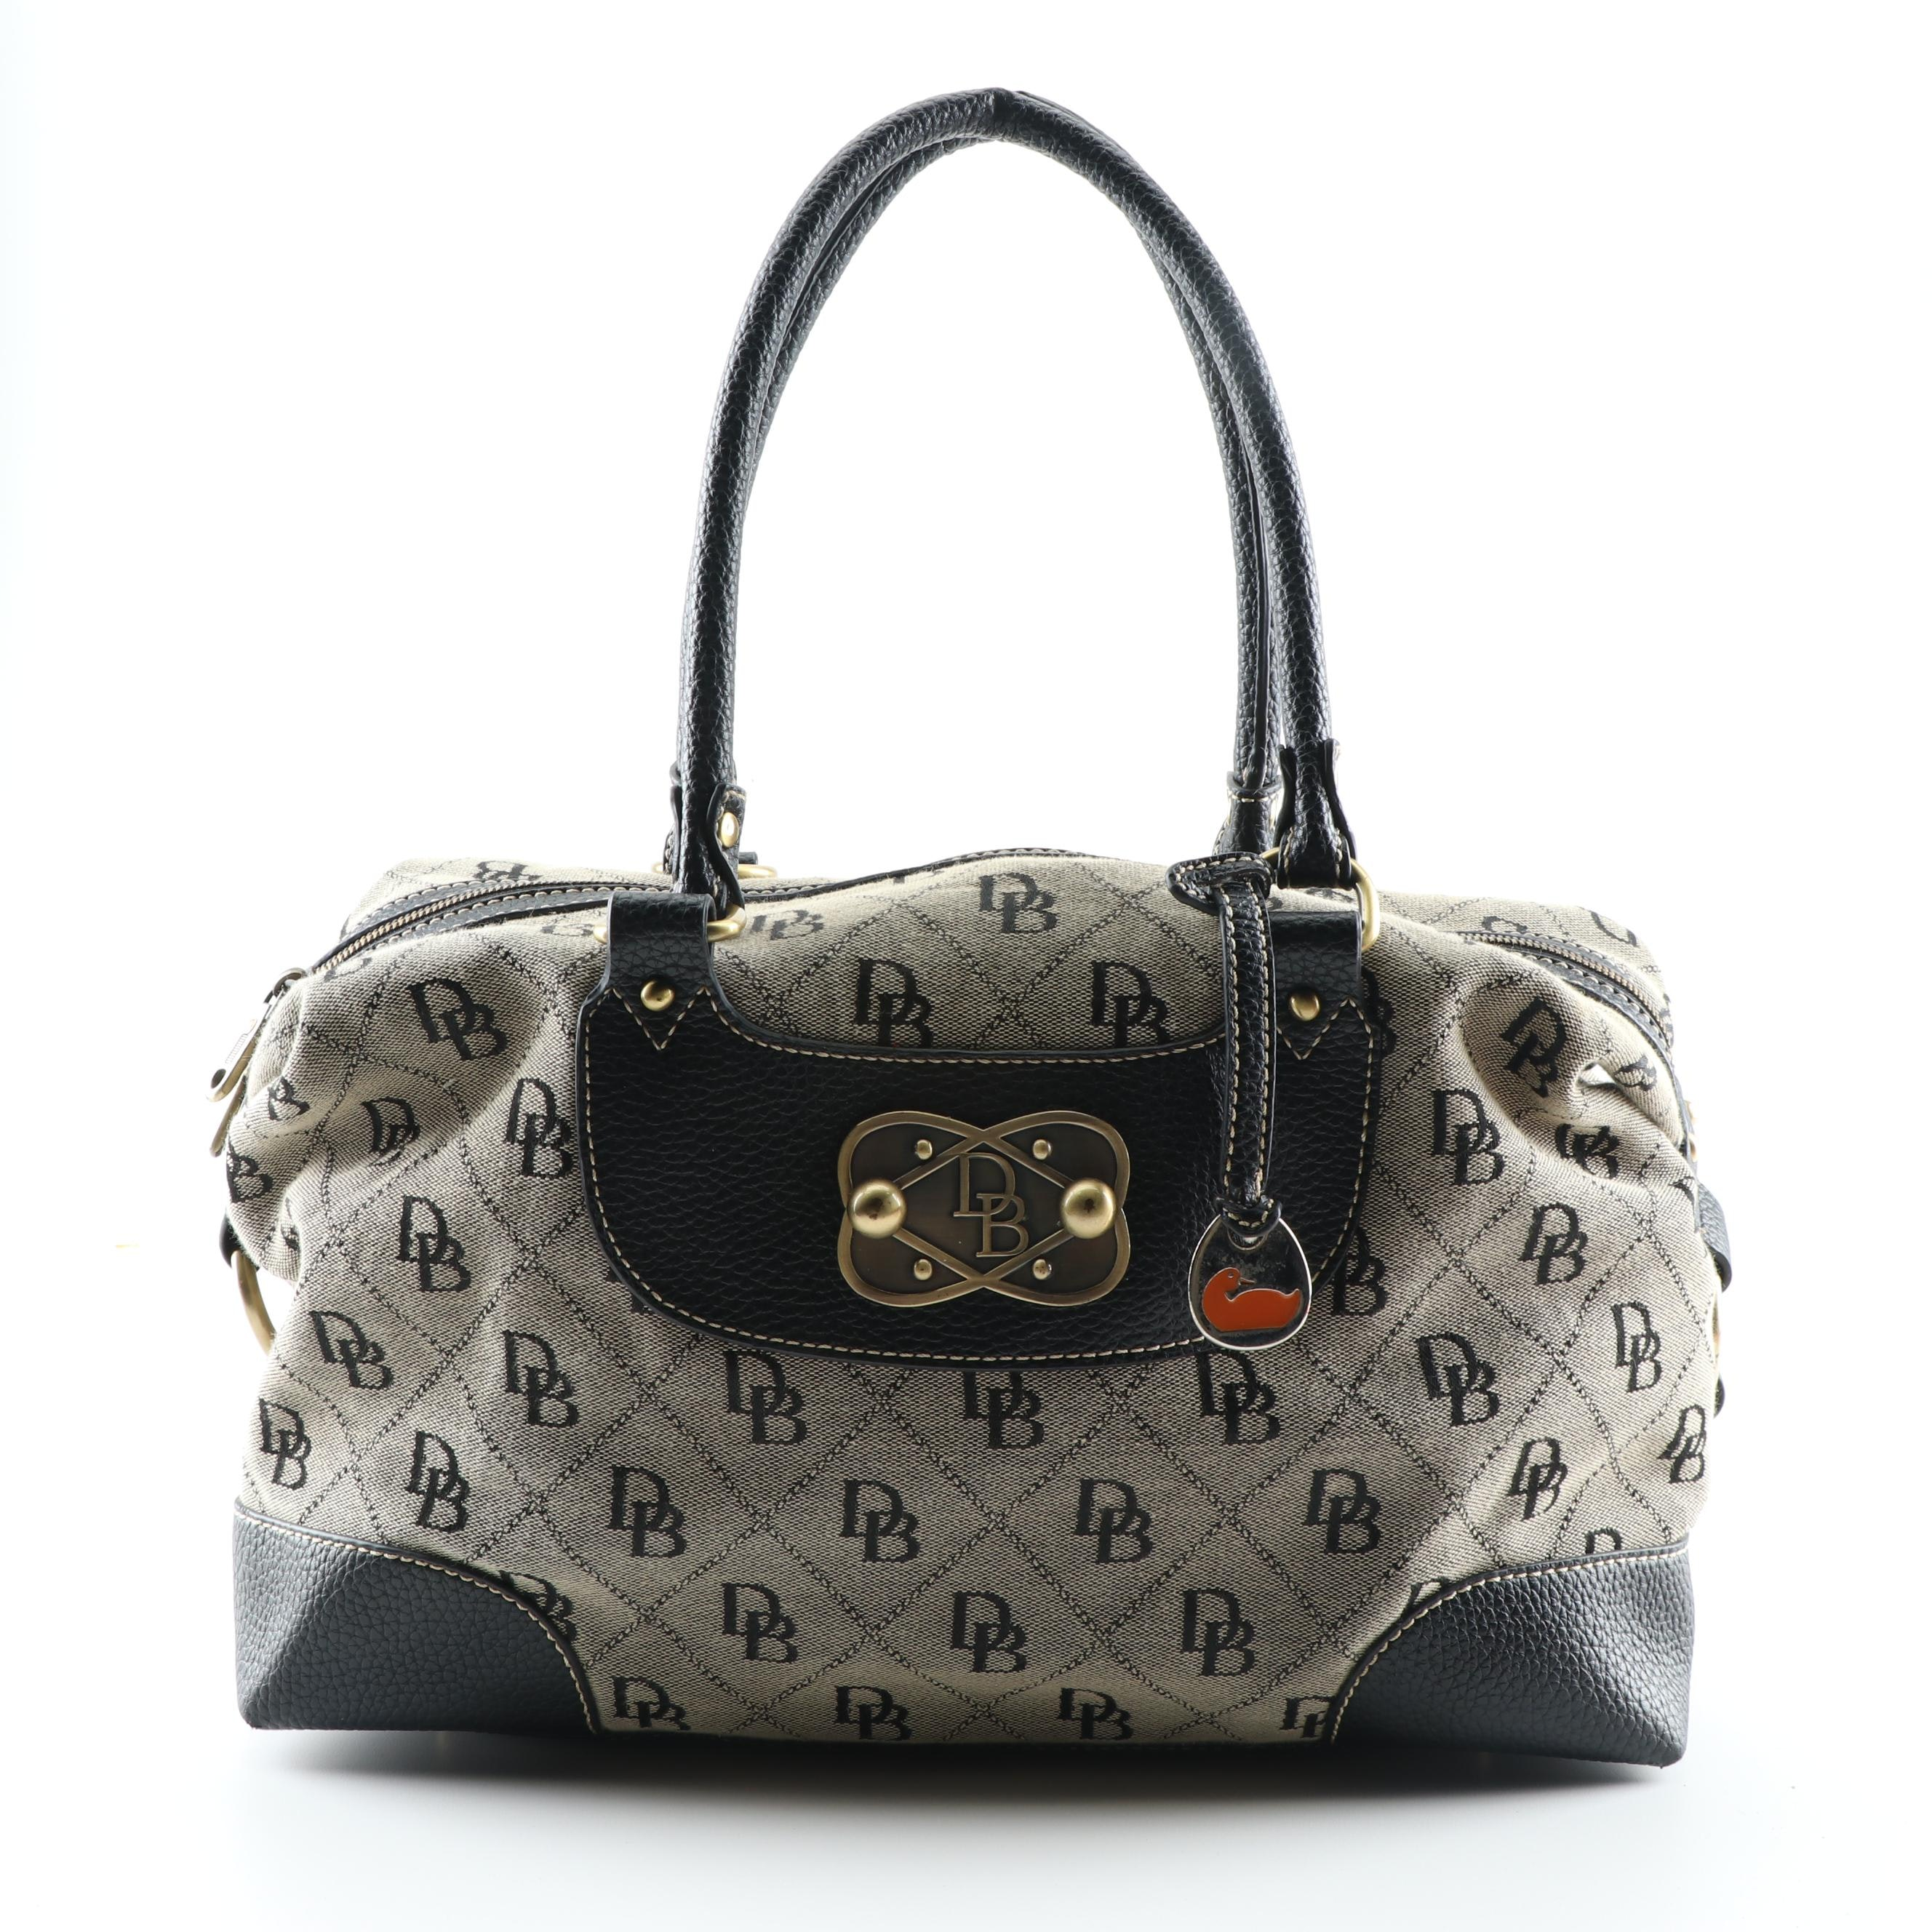 Dooney & Bourke Grey and Black Signature Canvas and Pebbled Leather Handbag